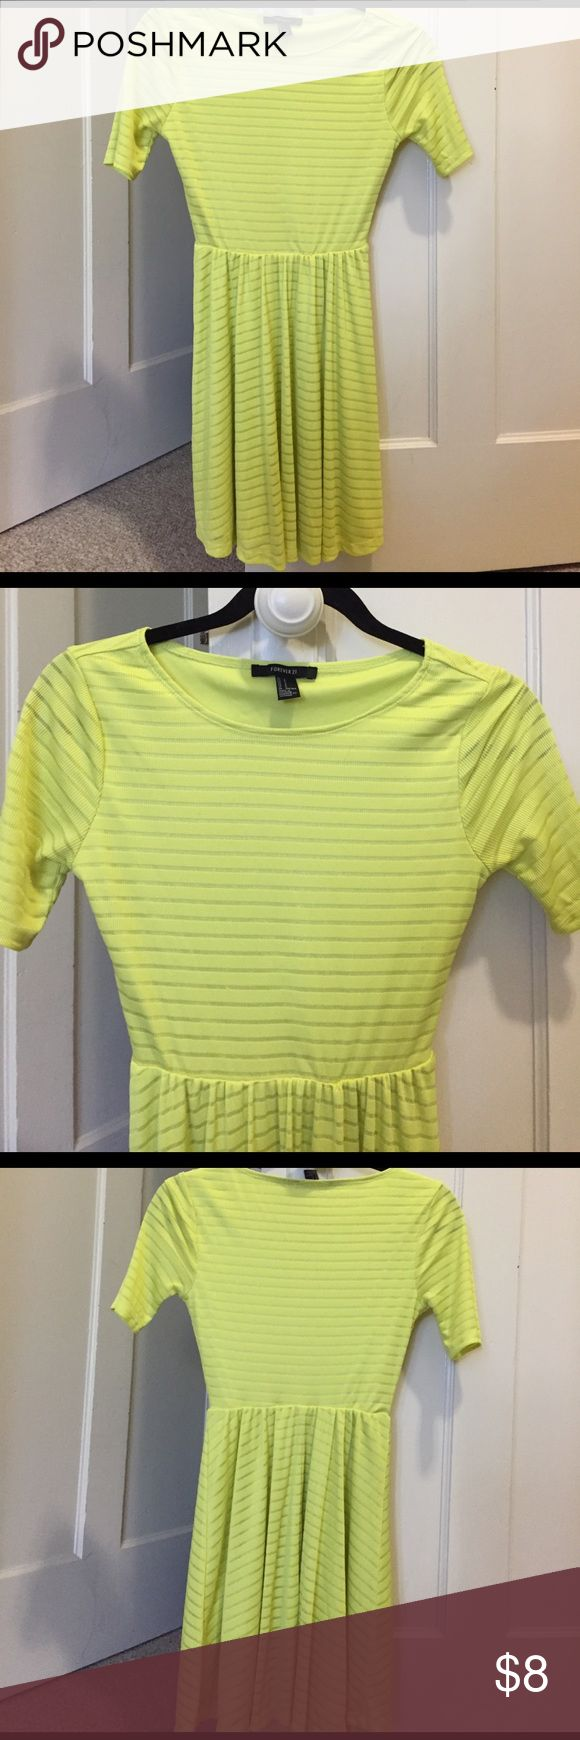 Neon yellow/lime green pretty dress in Small Neon yellow/lime green pretty dress in Small Forever 21 Dresses